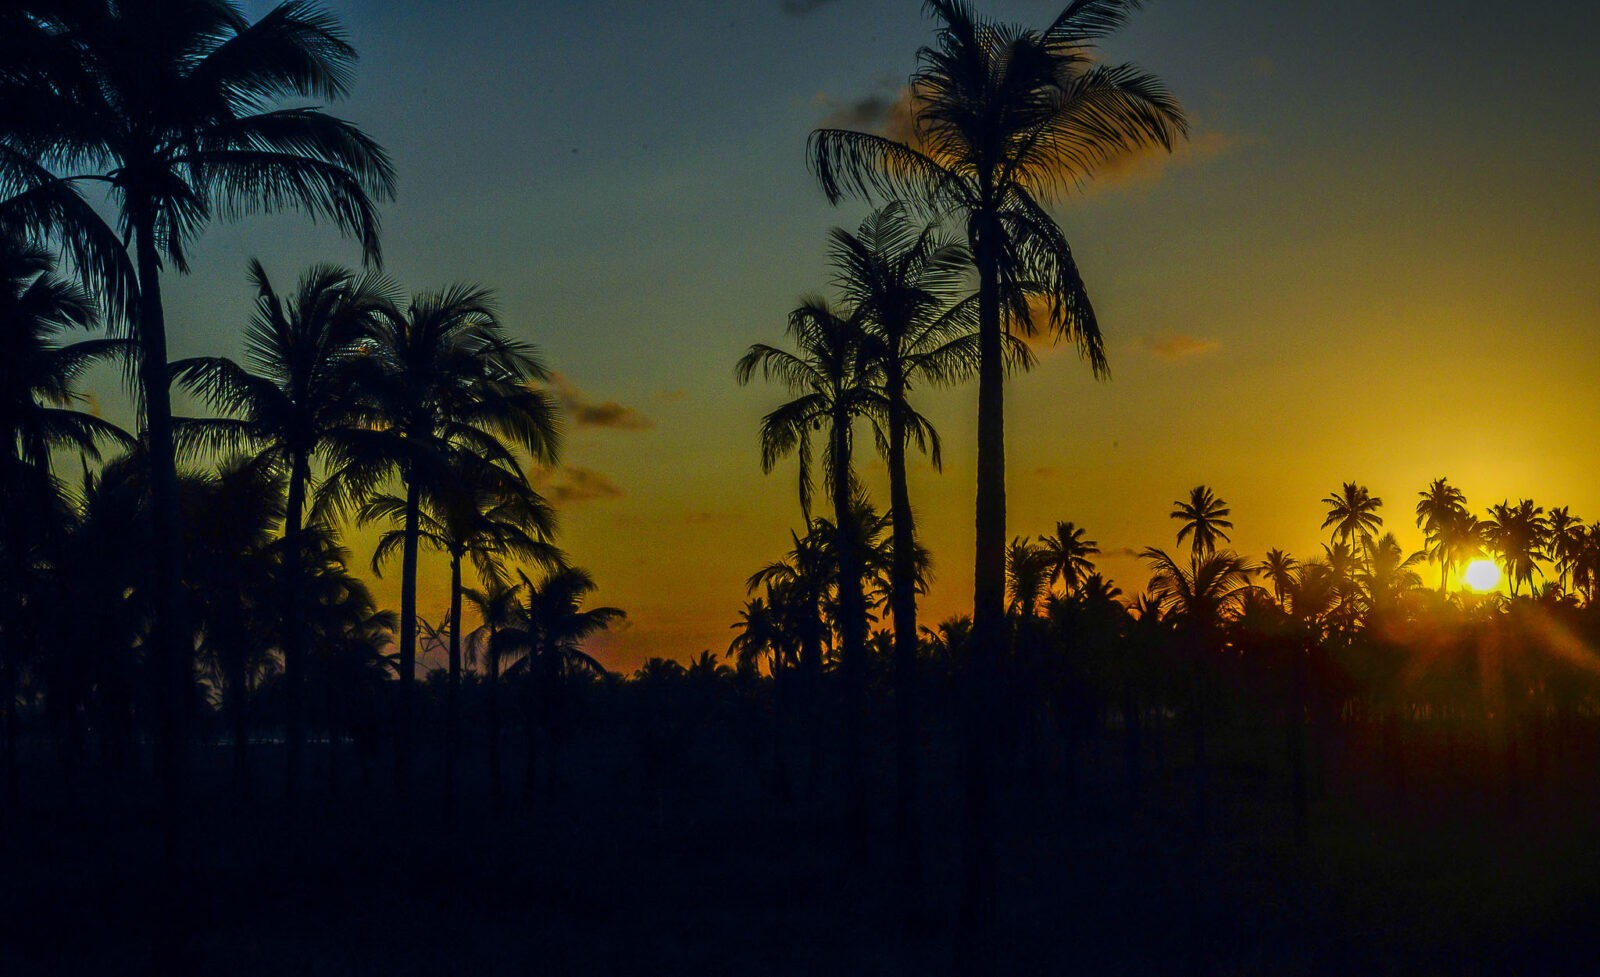 Iphone 5 Hd Wallpaper Nature 50 Palm Trees Sunset Wallpapers Hd High Quality Download